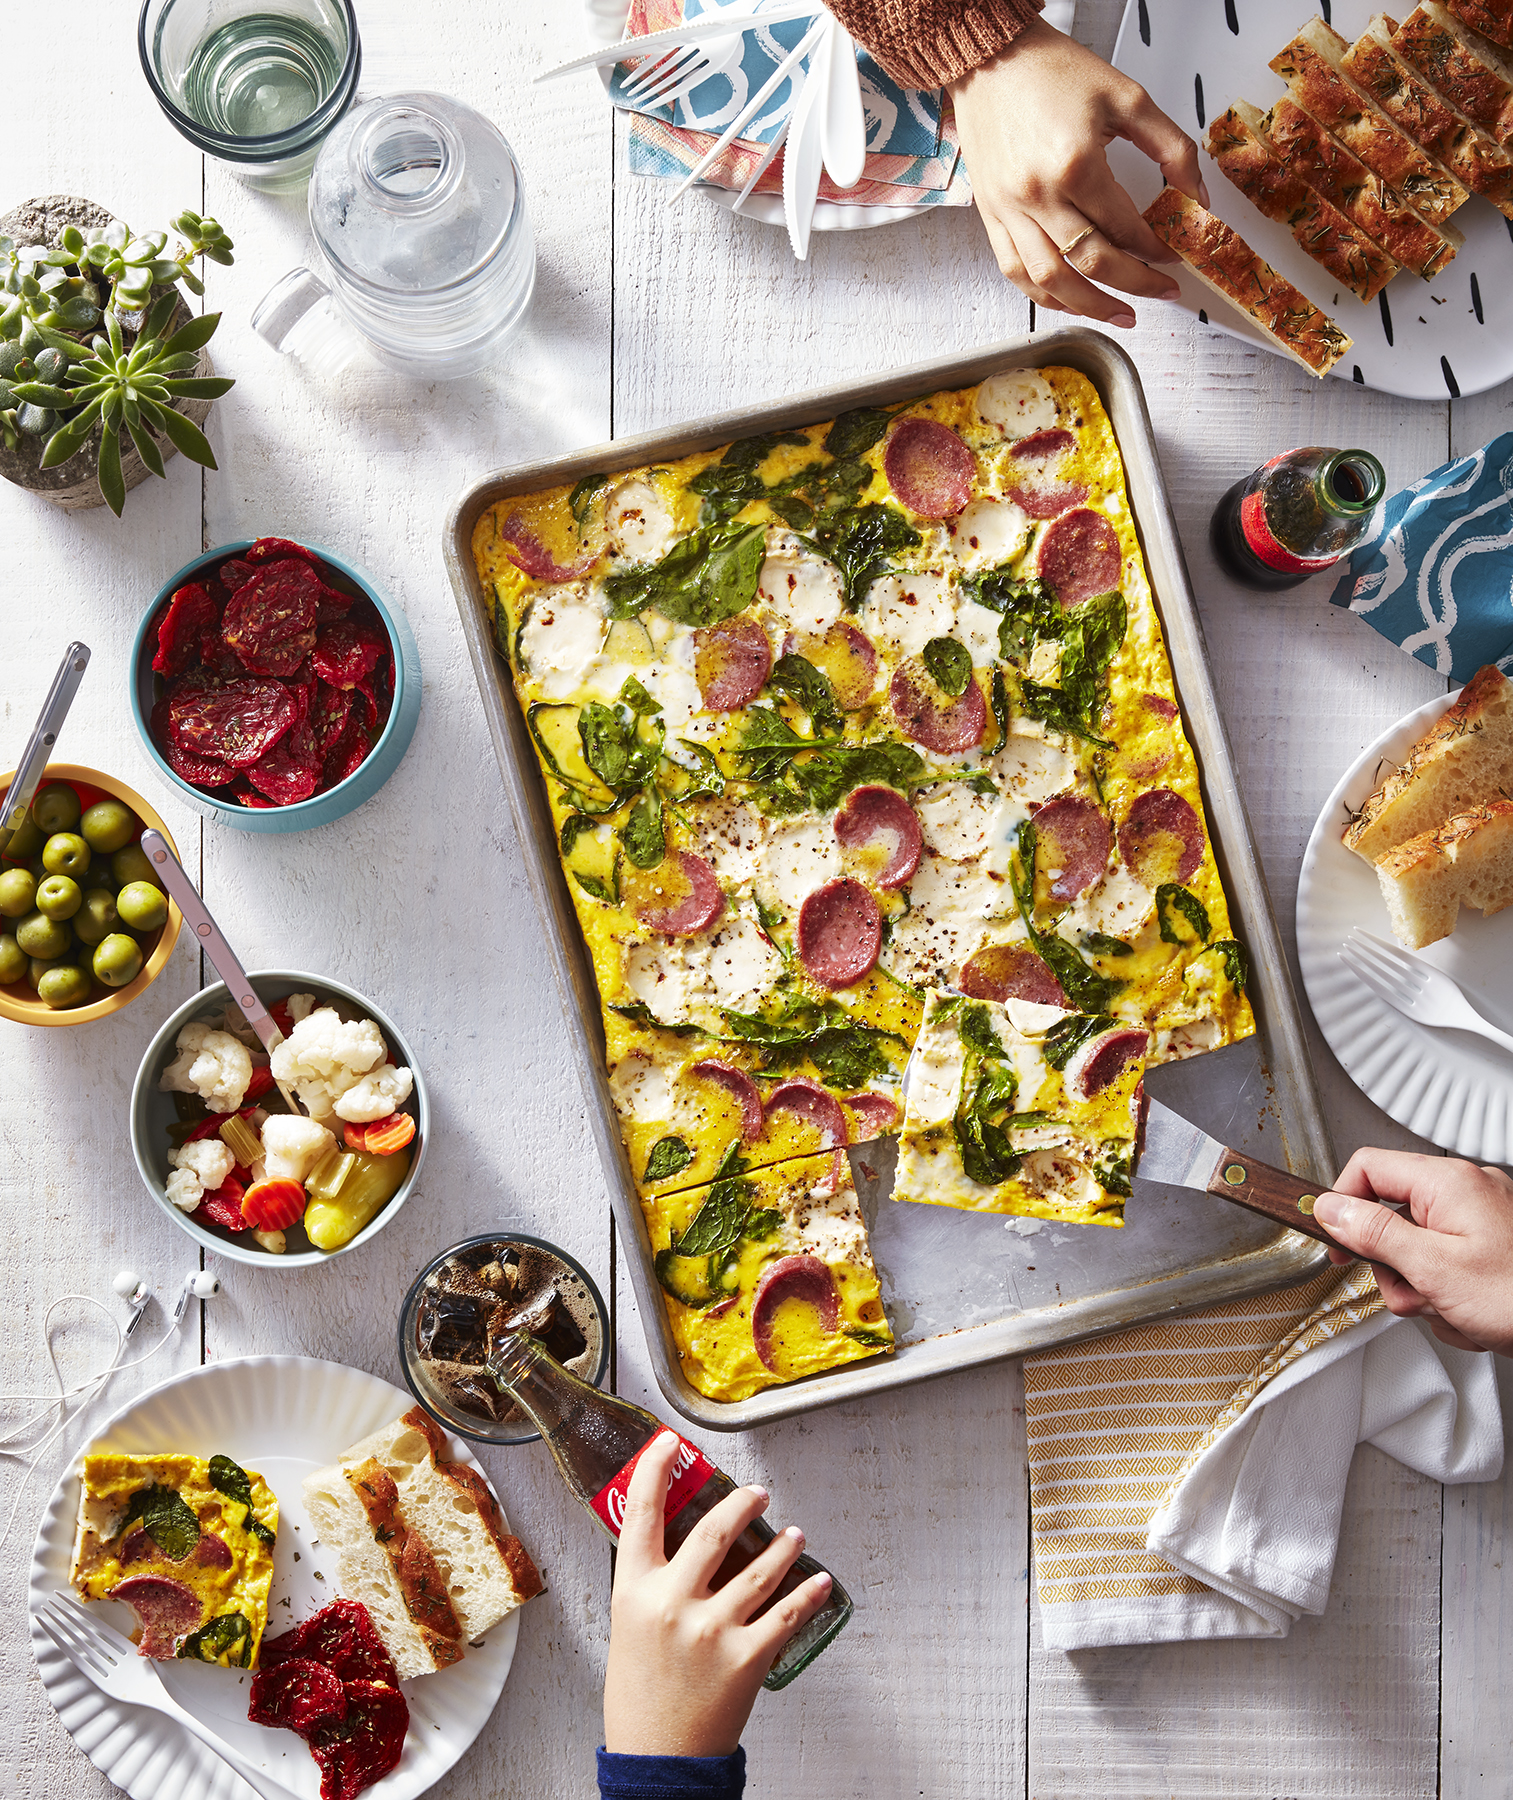 43Easy Christmas Breakfast Casseroles to Make Ahead or the Morning of